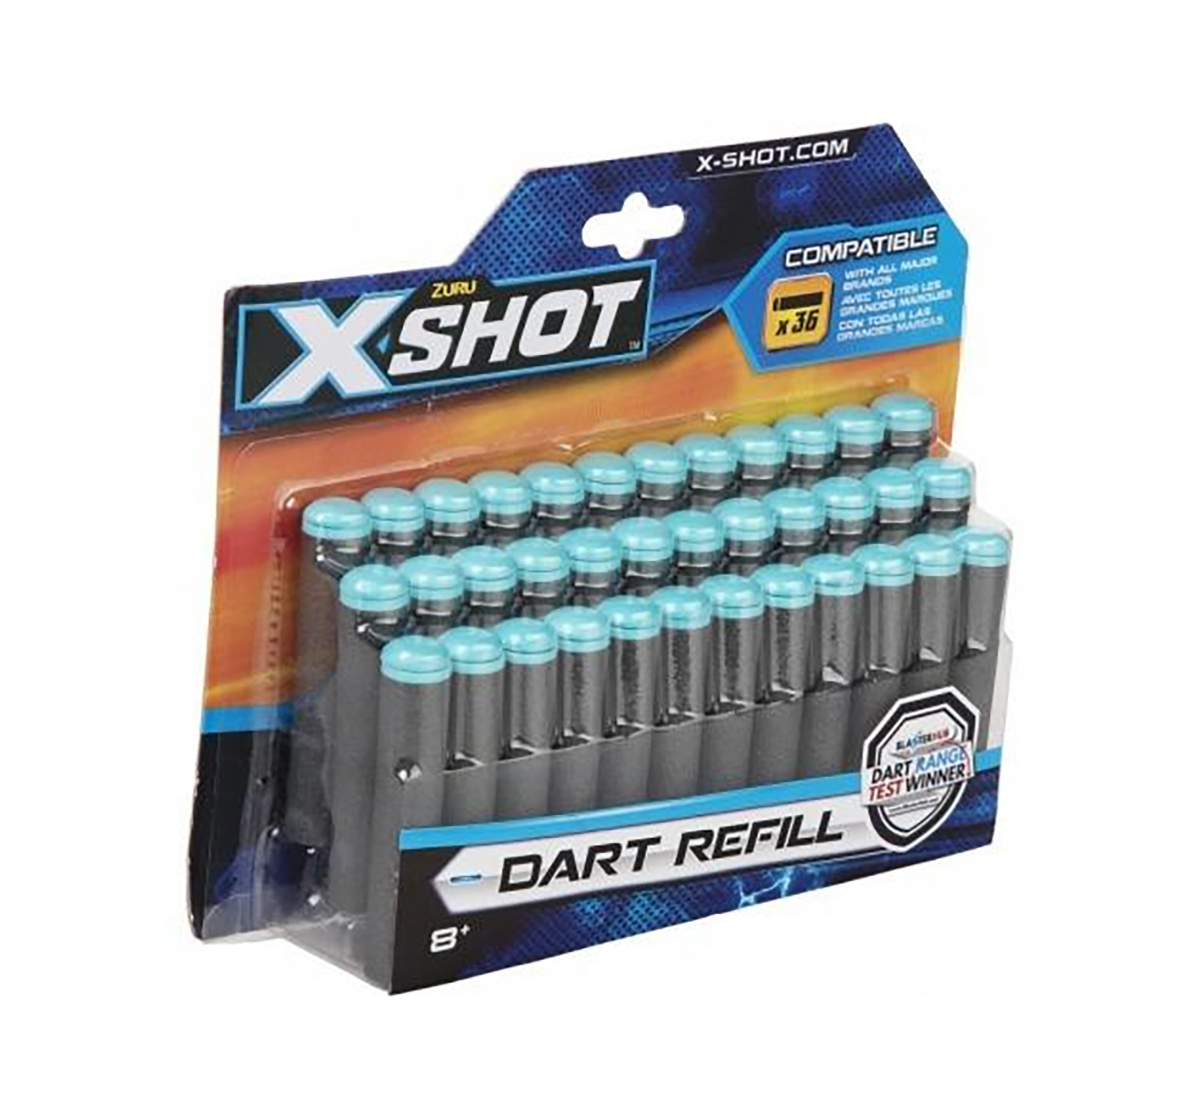 X-Shot | X-Shot 36 Darts Refill Pack Target Games  for Kids age 8Y+ (Grey)